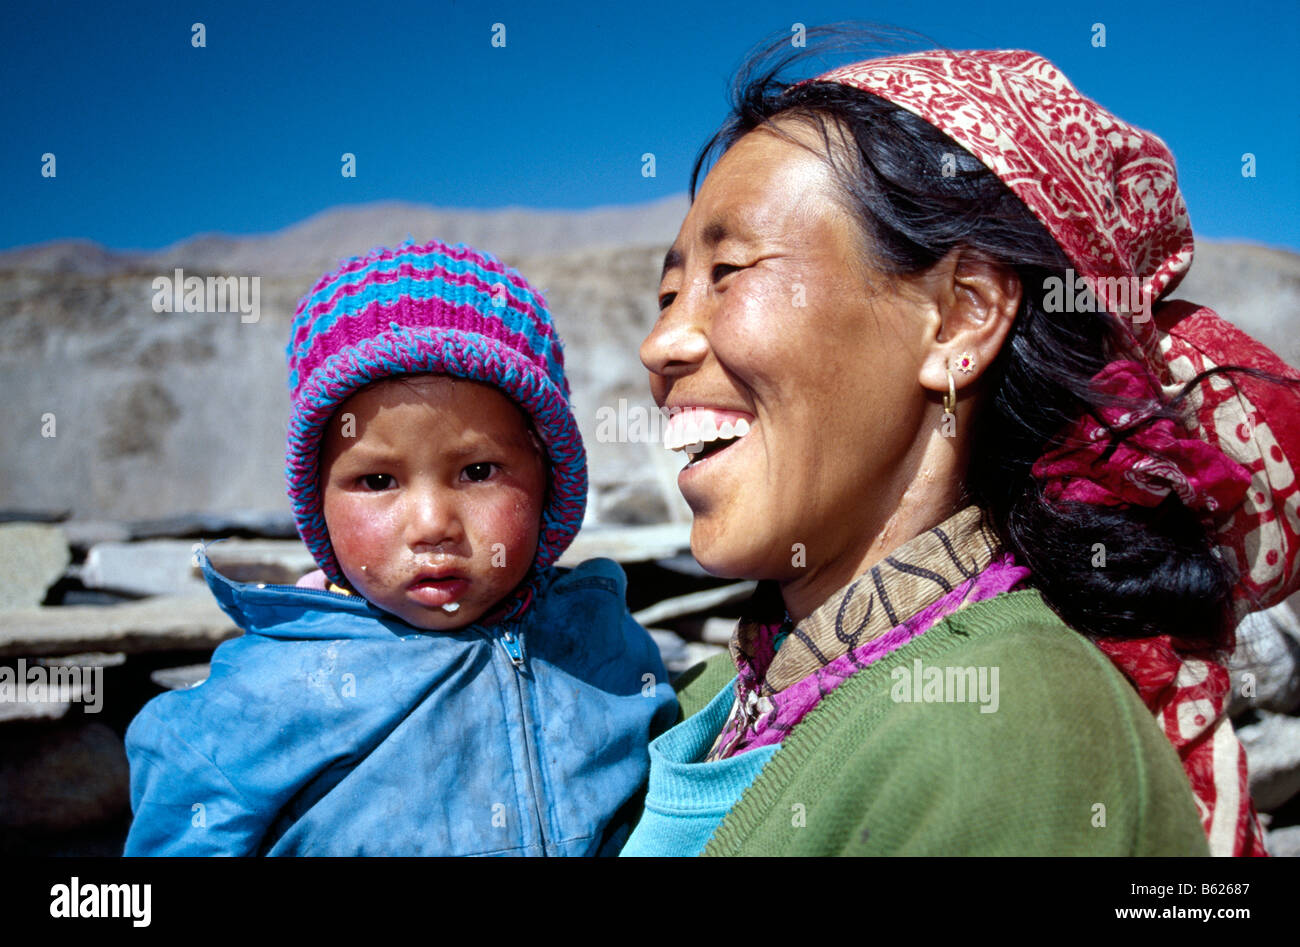 Woman and child, Rumptse, Ladakh, Himachal Pradesh, India, Asia - Stock Image